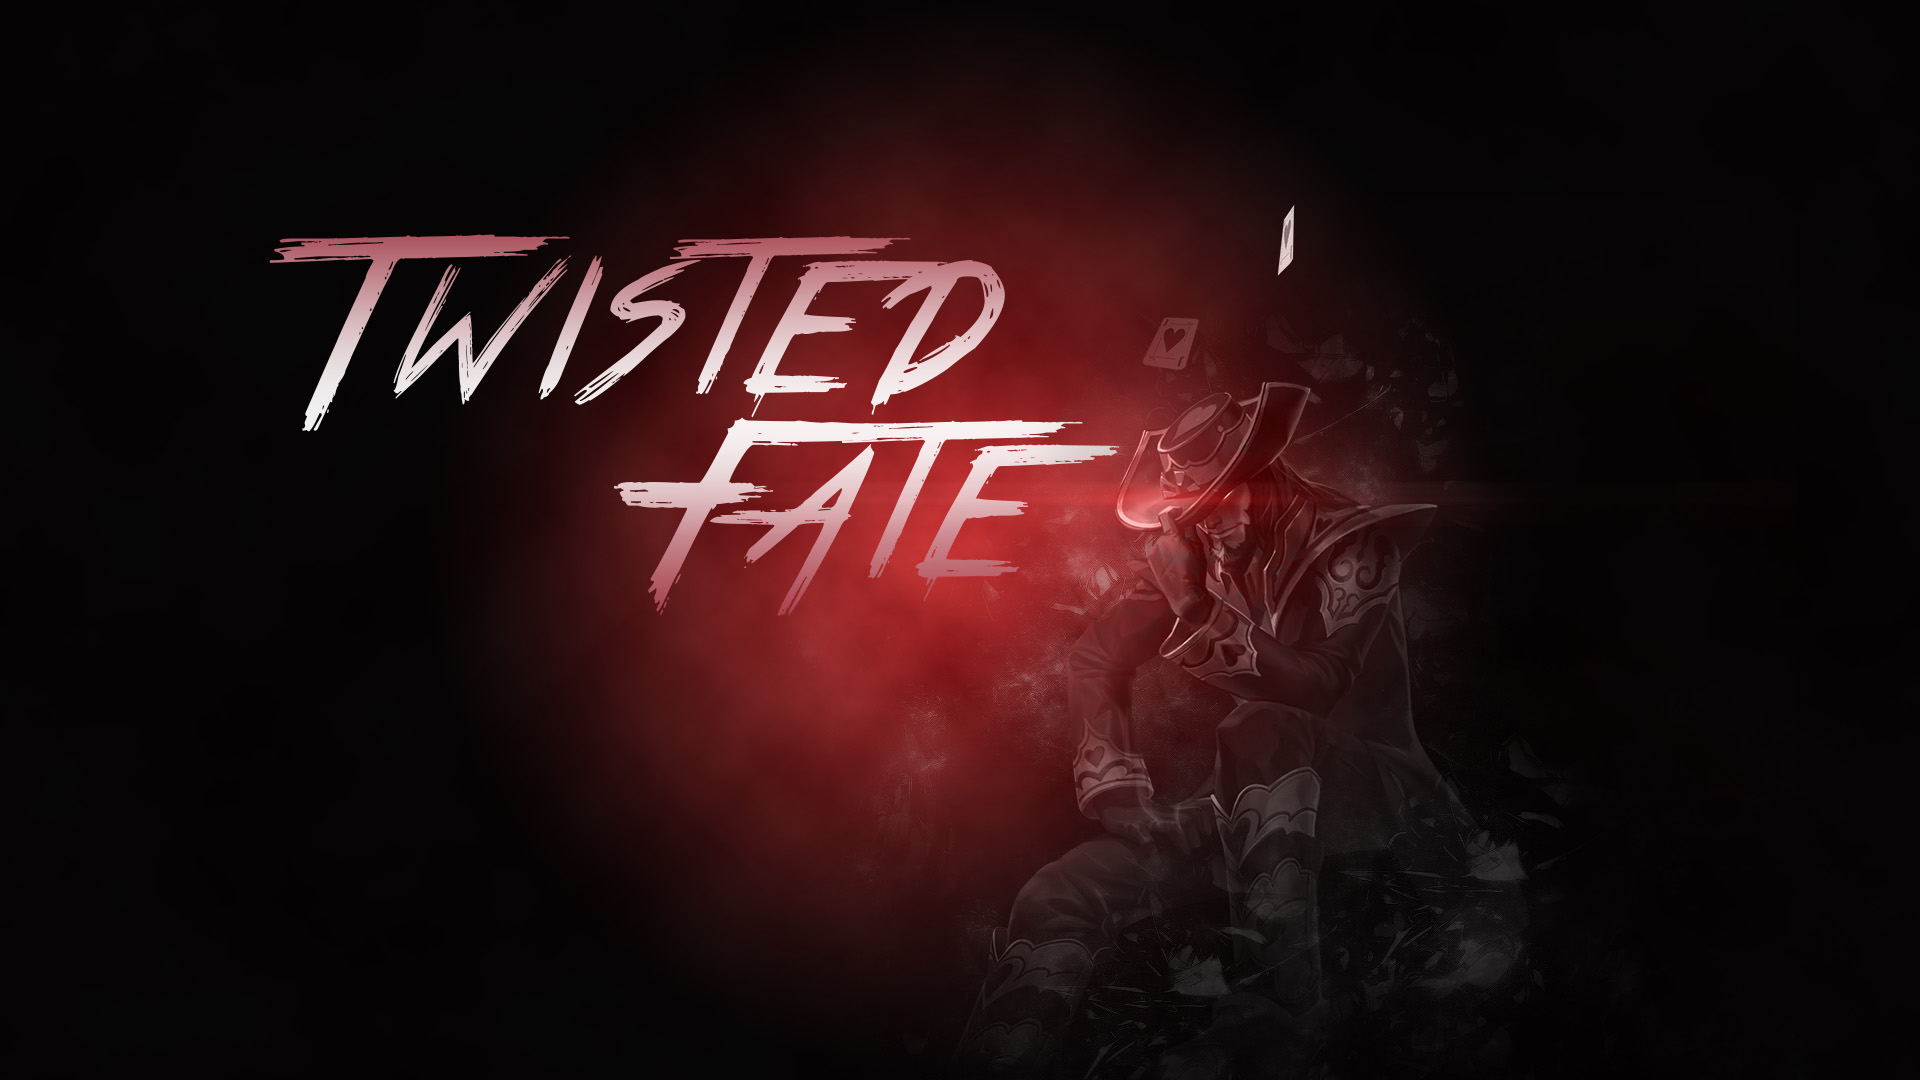 League Of Legends Twisted Fate Wallpaper 1920x1080 By Theredamaro